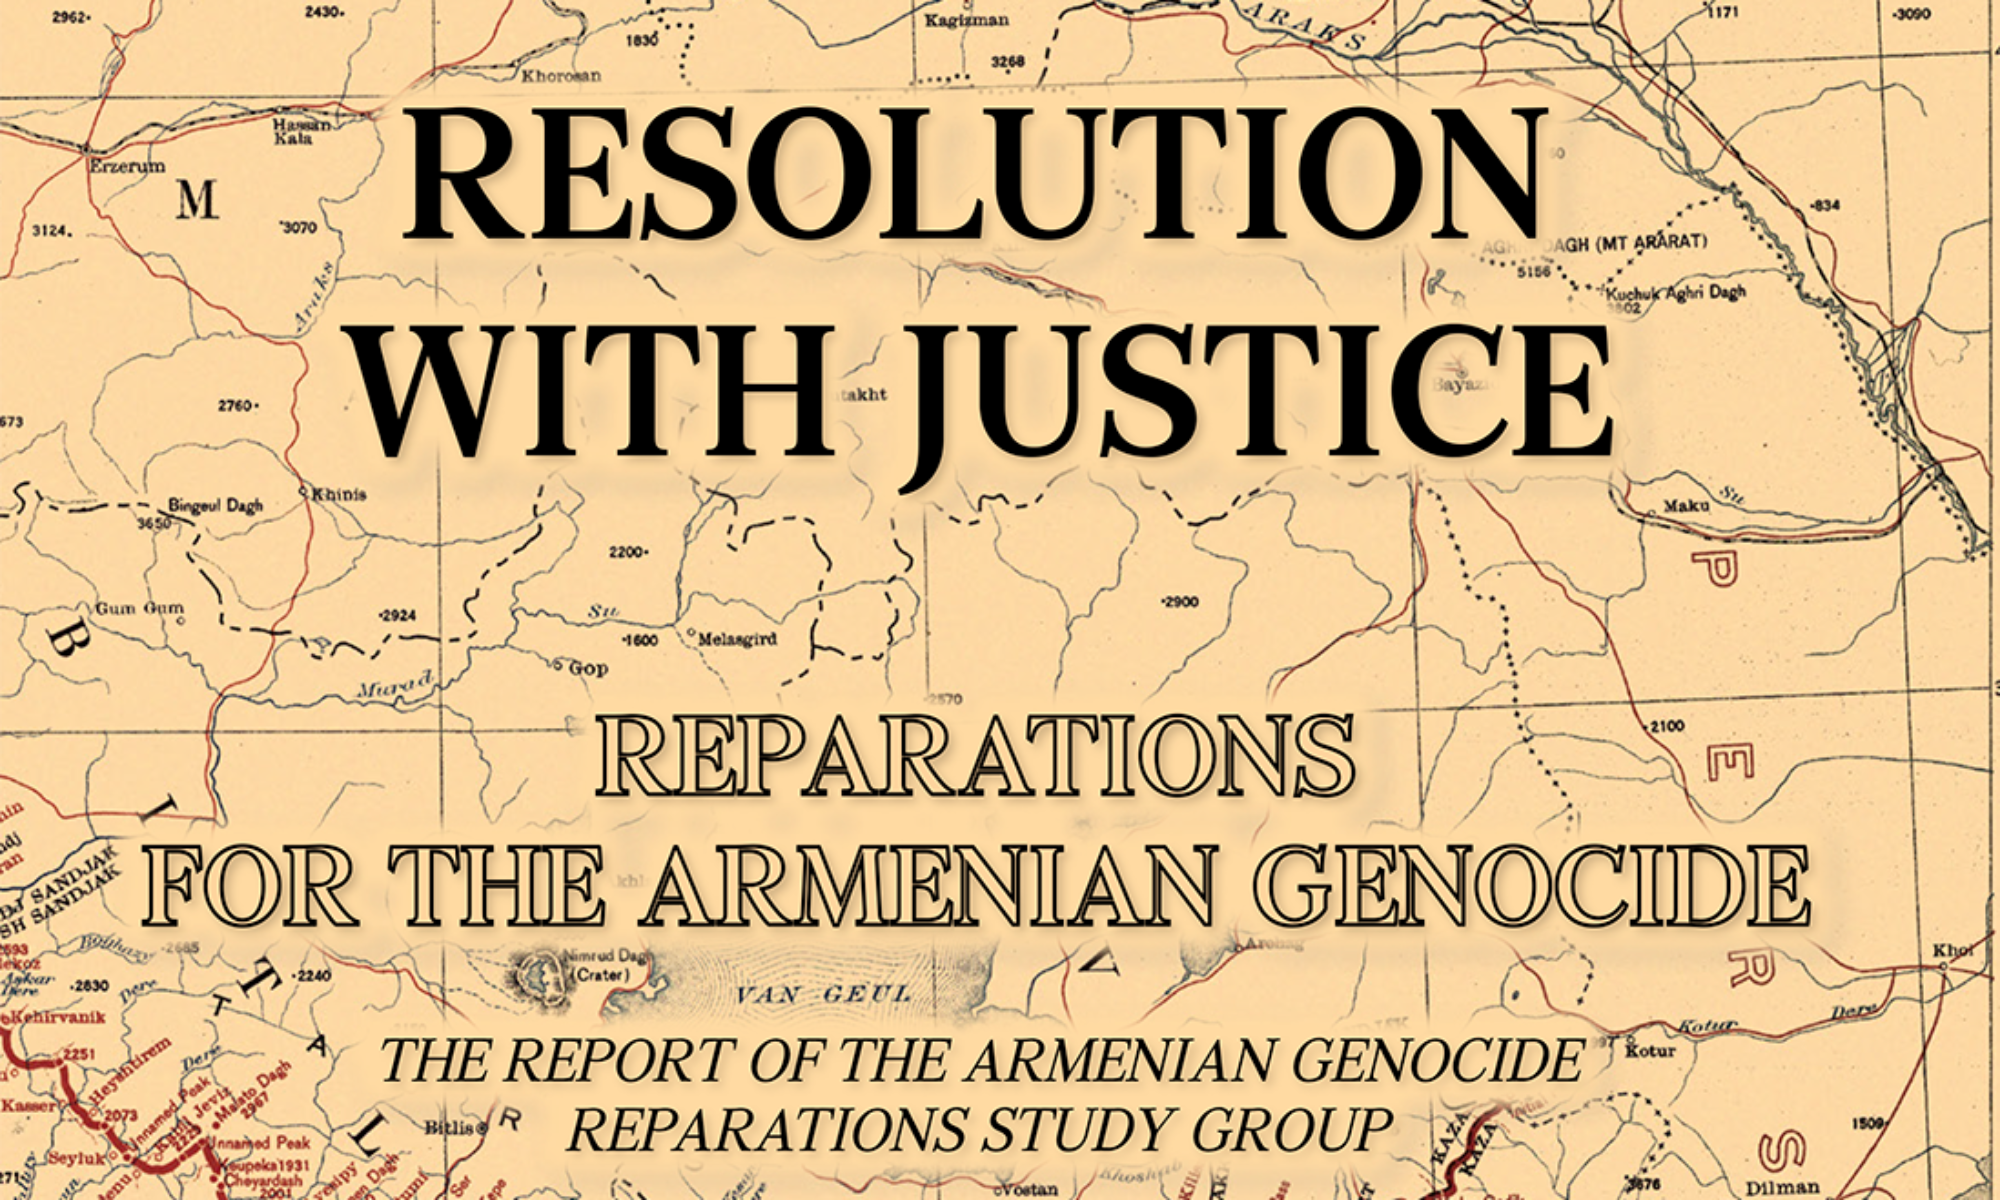 Armenian Genocide Reparations Study Group